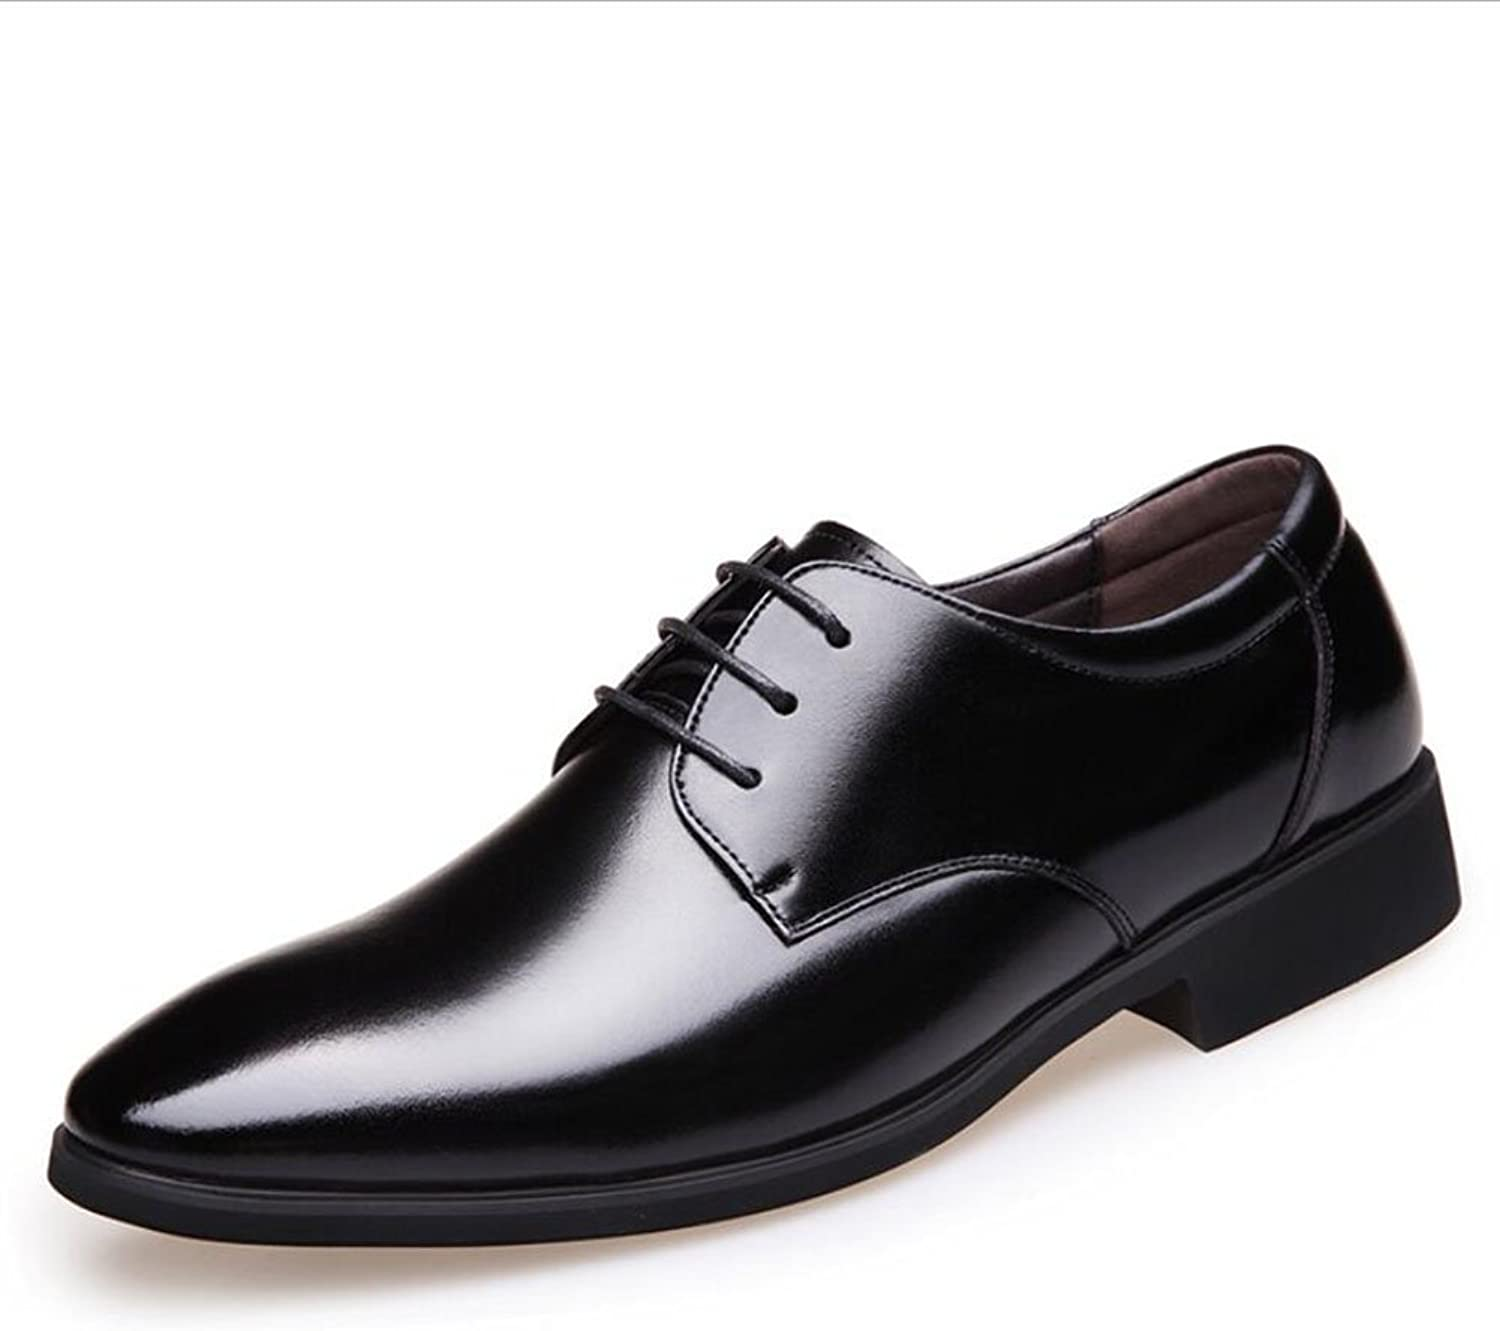 Gfp 2018 The New Men's Leather shoes Formal Business Men's shoes Leather Work Comfort Lace-up Office & Career Party & Evening Pointed Lace up shoes